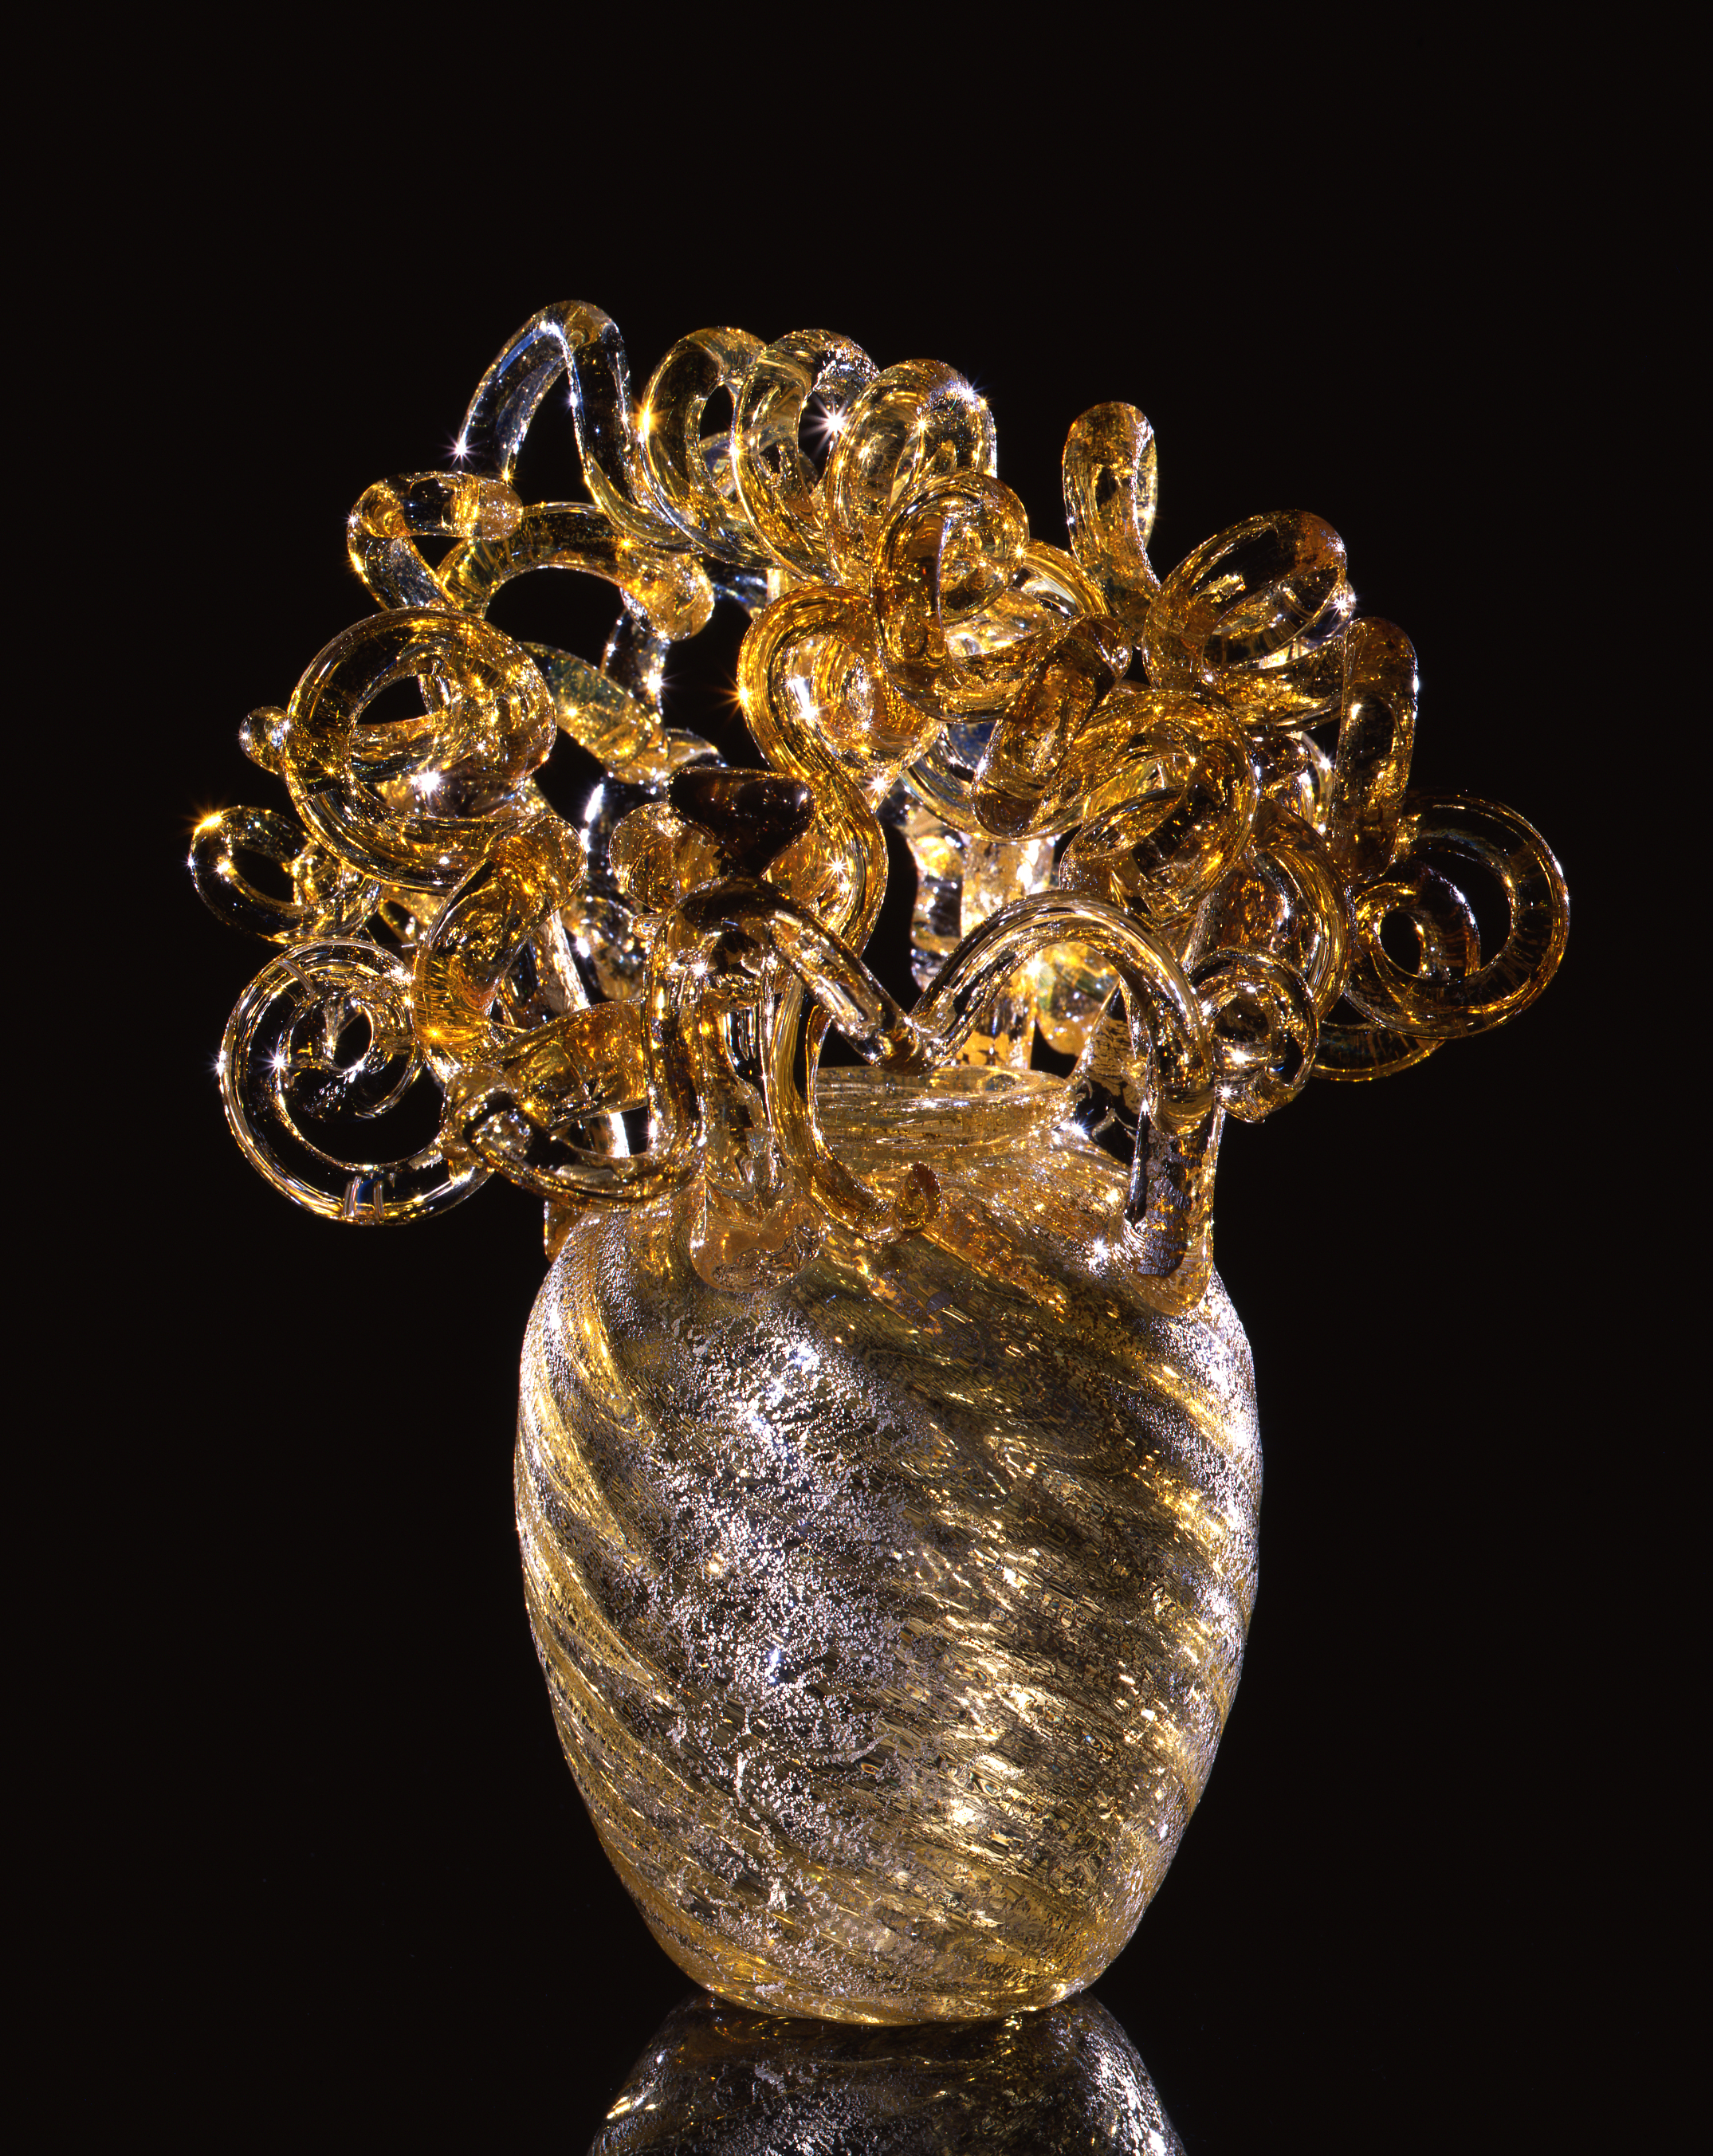 Dale Chihuly,  Golden Piccolo Venetian  (1993, glass, 8 x 6 x 6 inches)